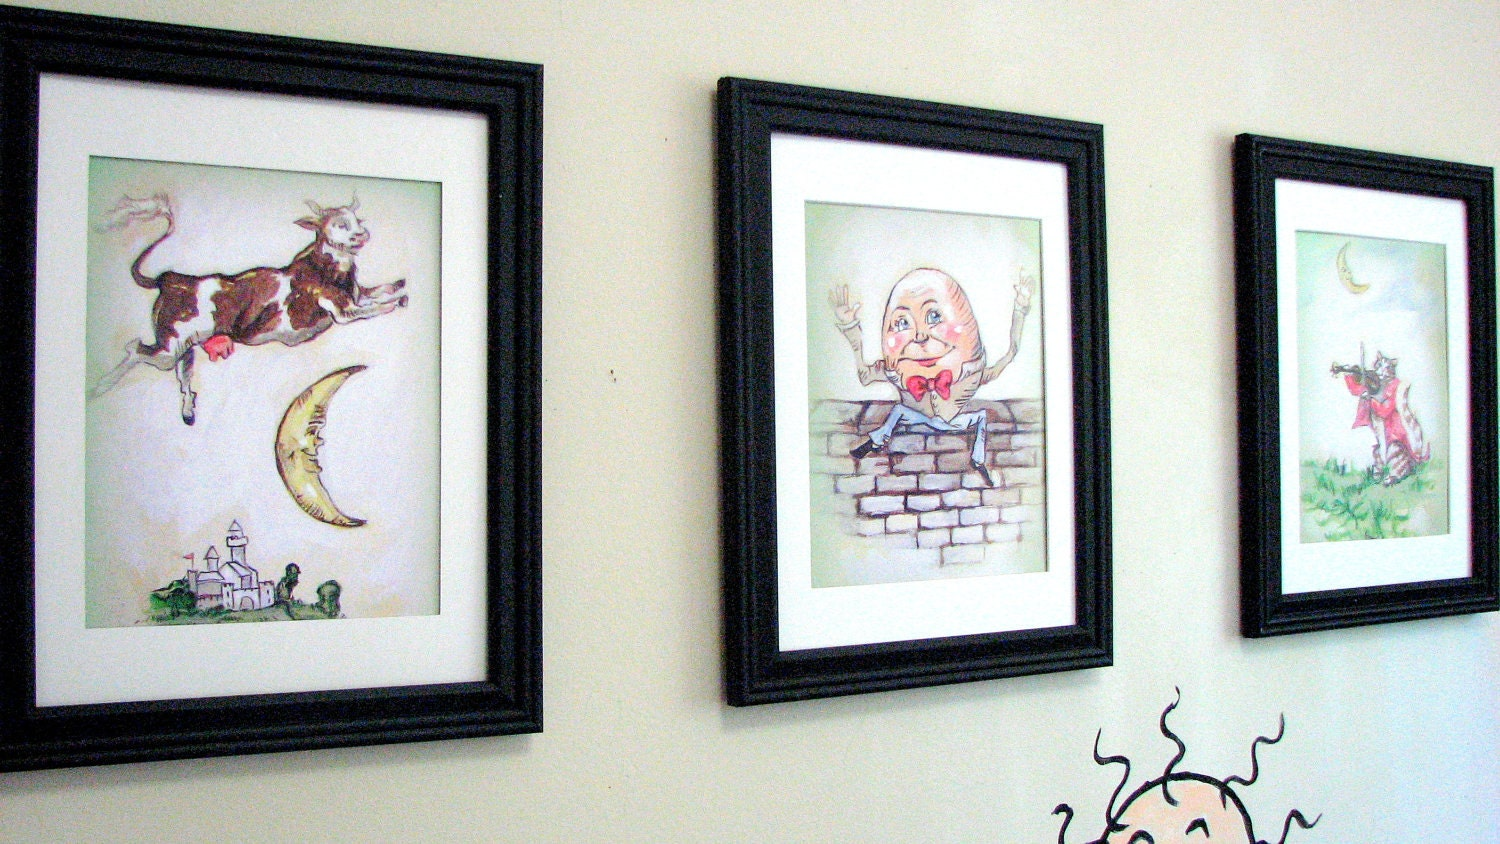 Wall art nursery decor nursery rhyme prints 8 x 10 for Room decor etsy